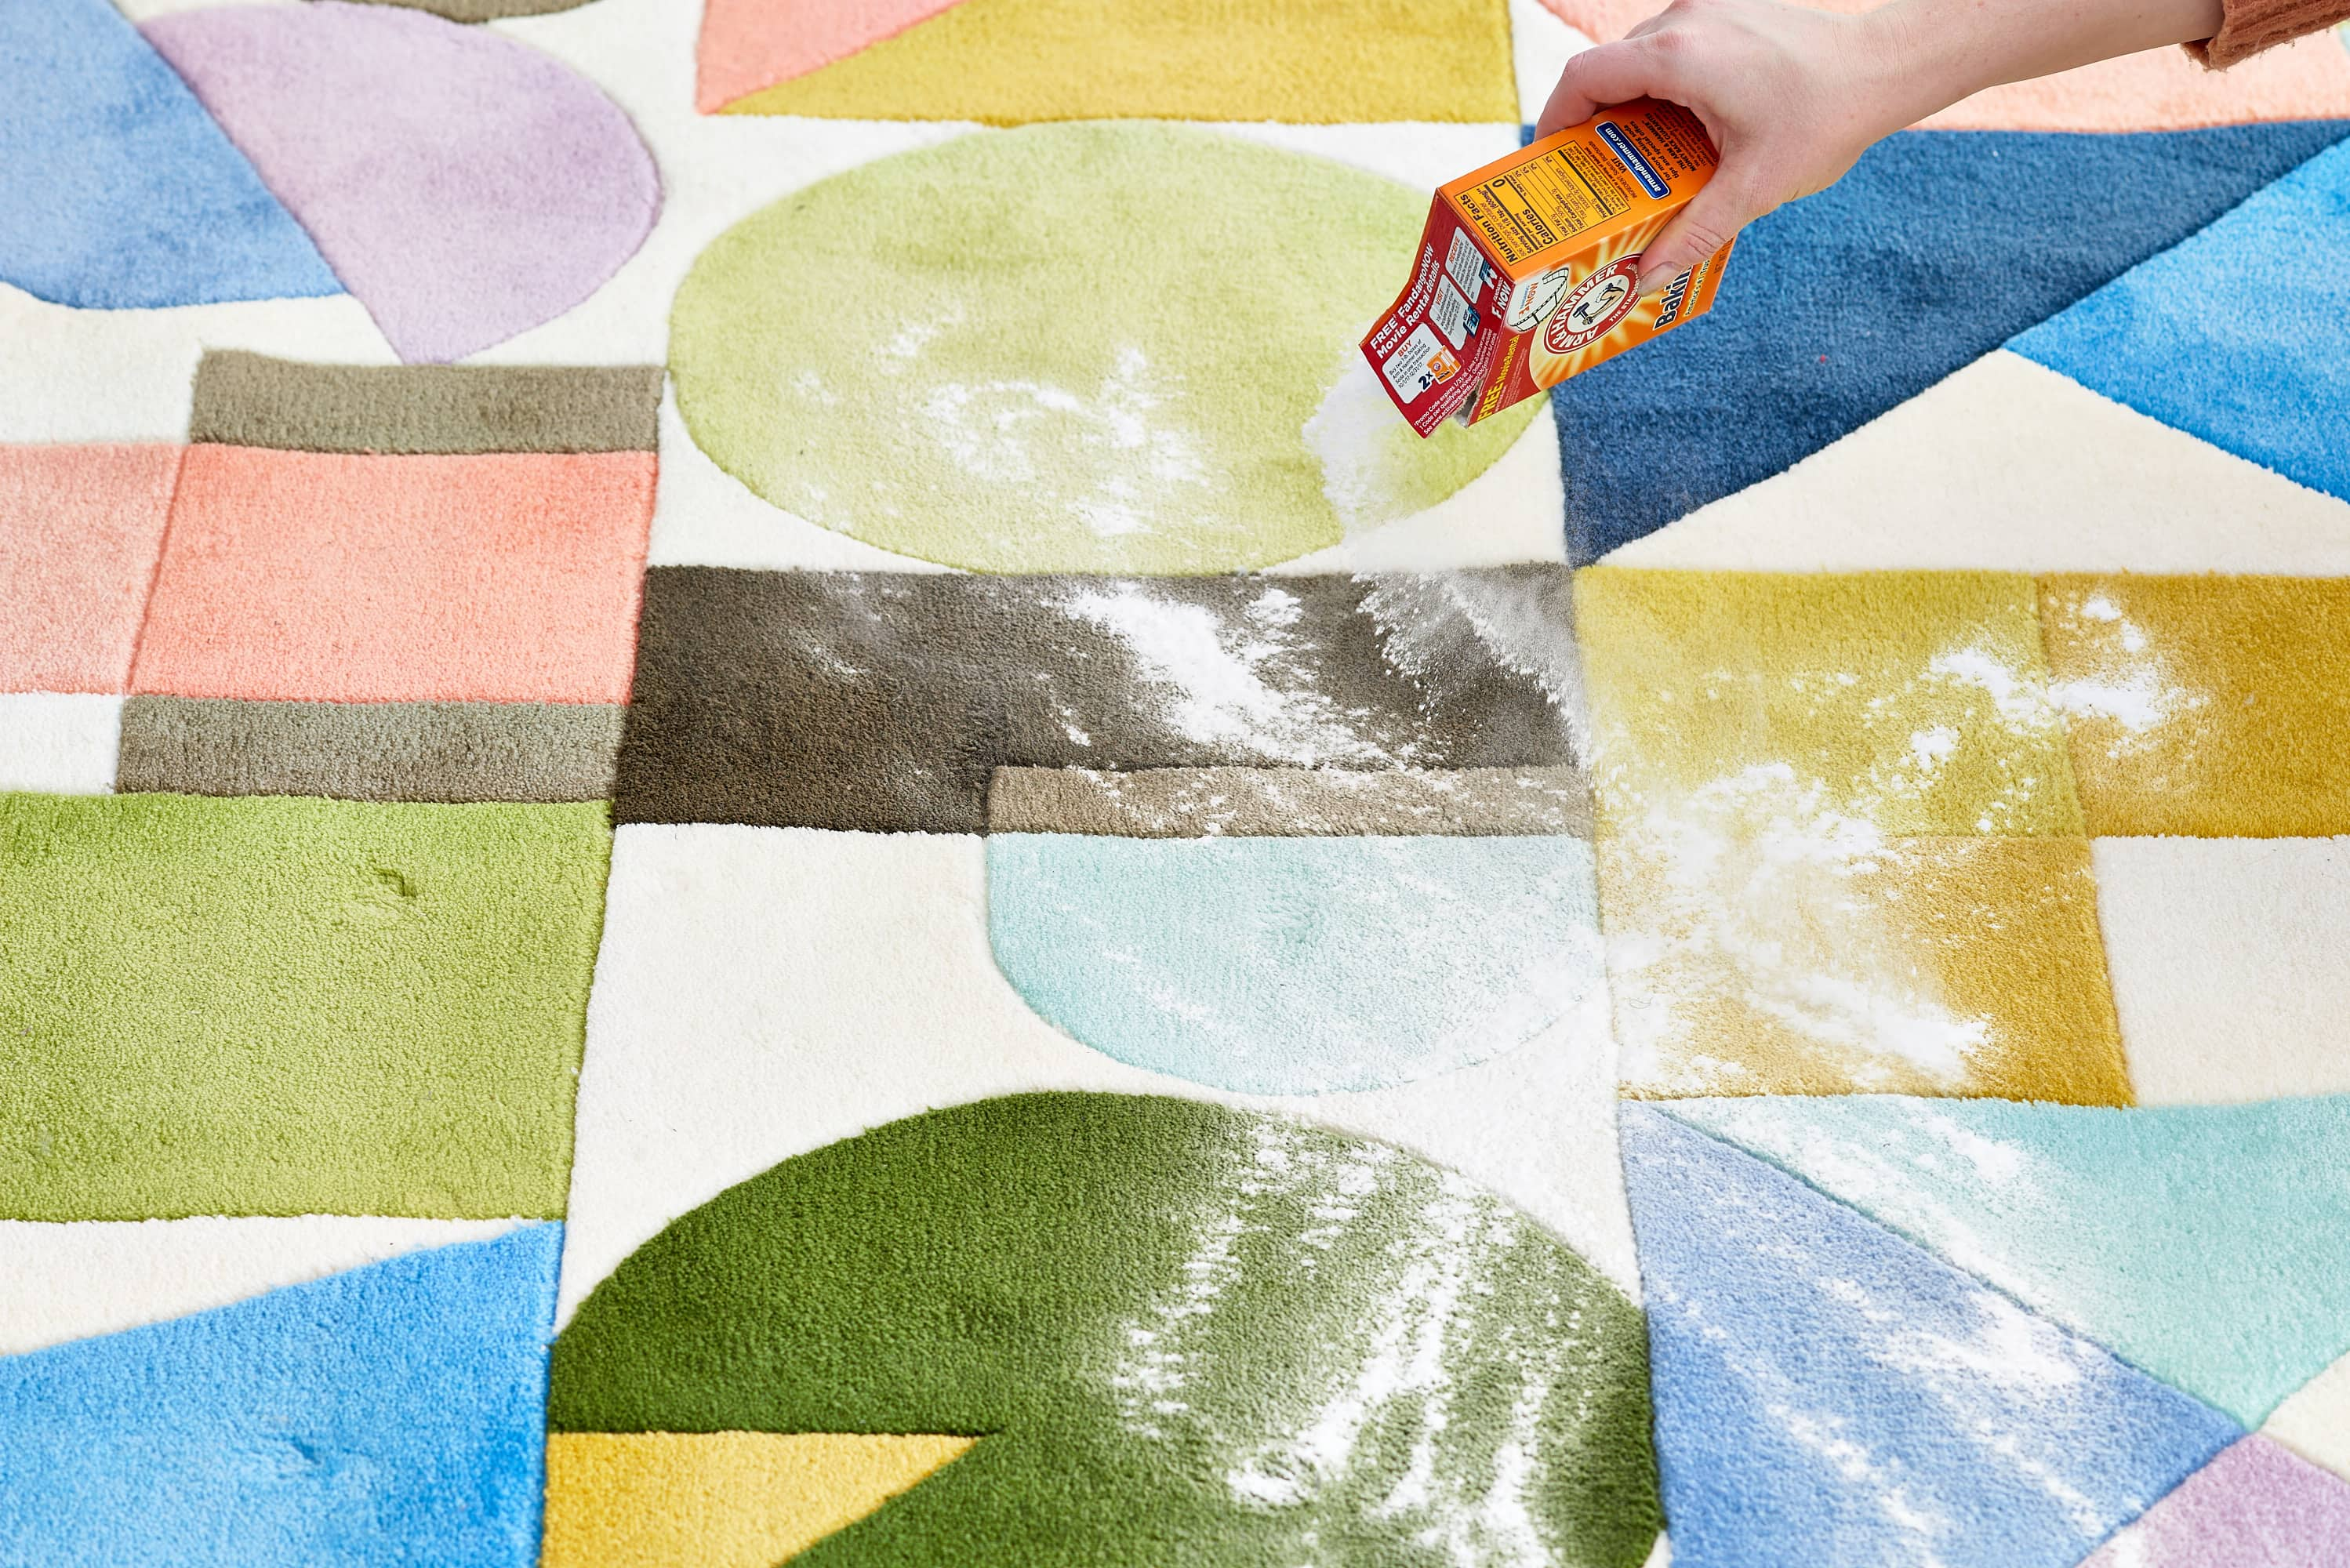 How To Deodorize Your Carpet Naturally with Baking Soda: gallery image 2